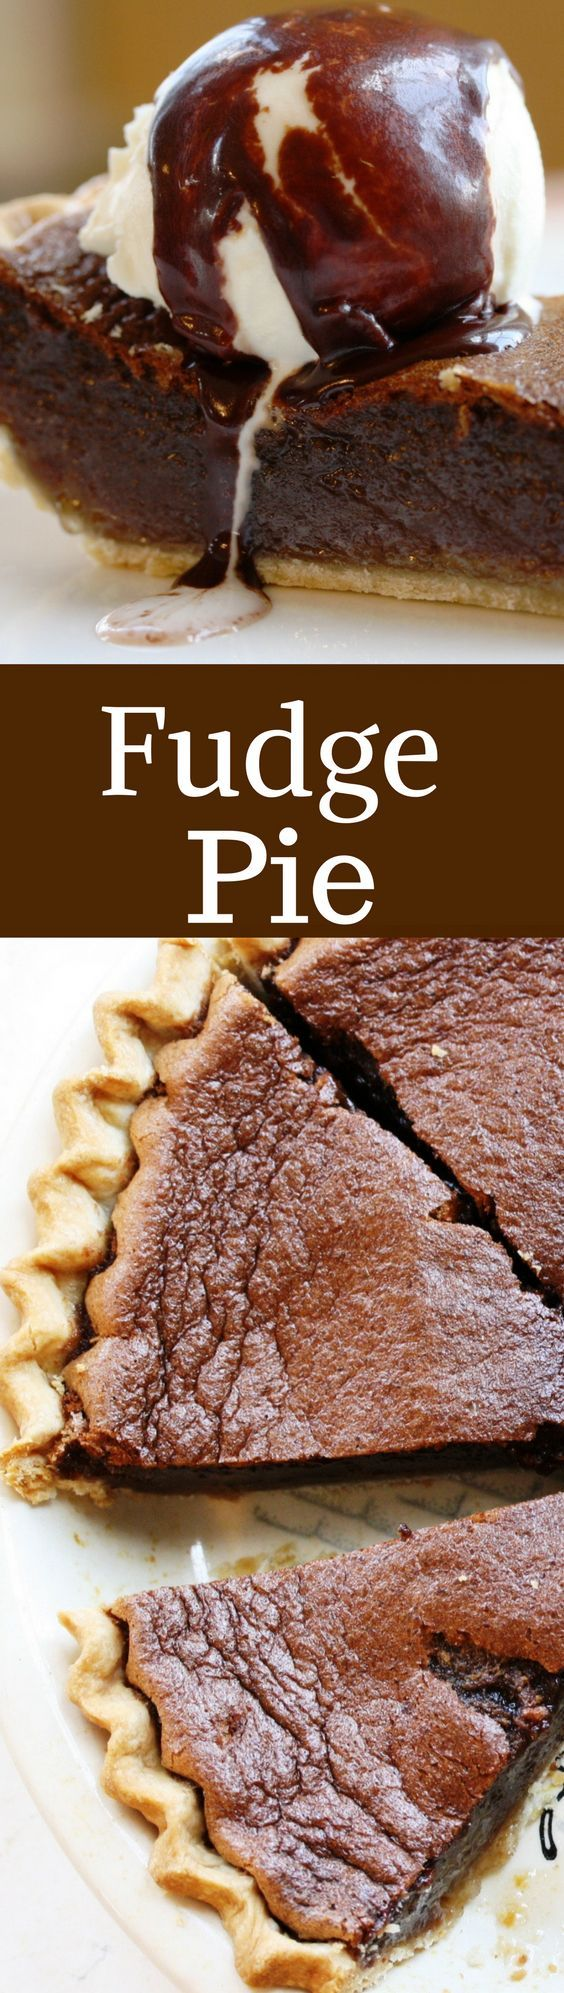 Fudge Pie with a wonderful texture, light chocolate flavor and a filling similar to pecan pie without the pecans! www.savingdessert.com